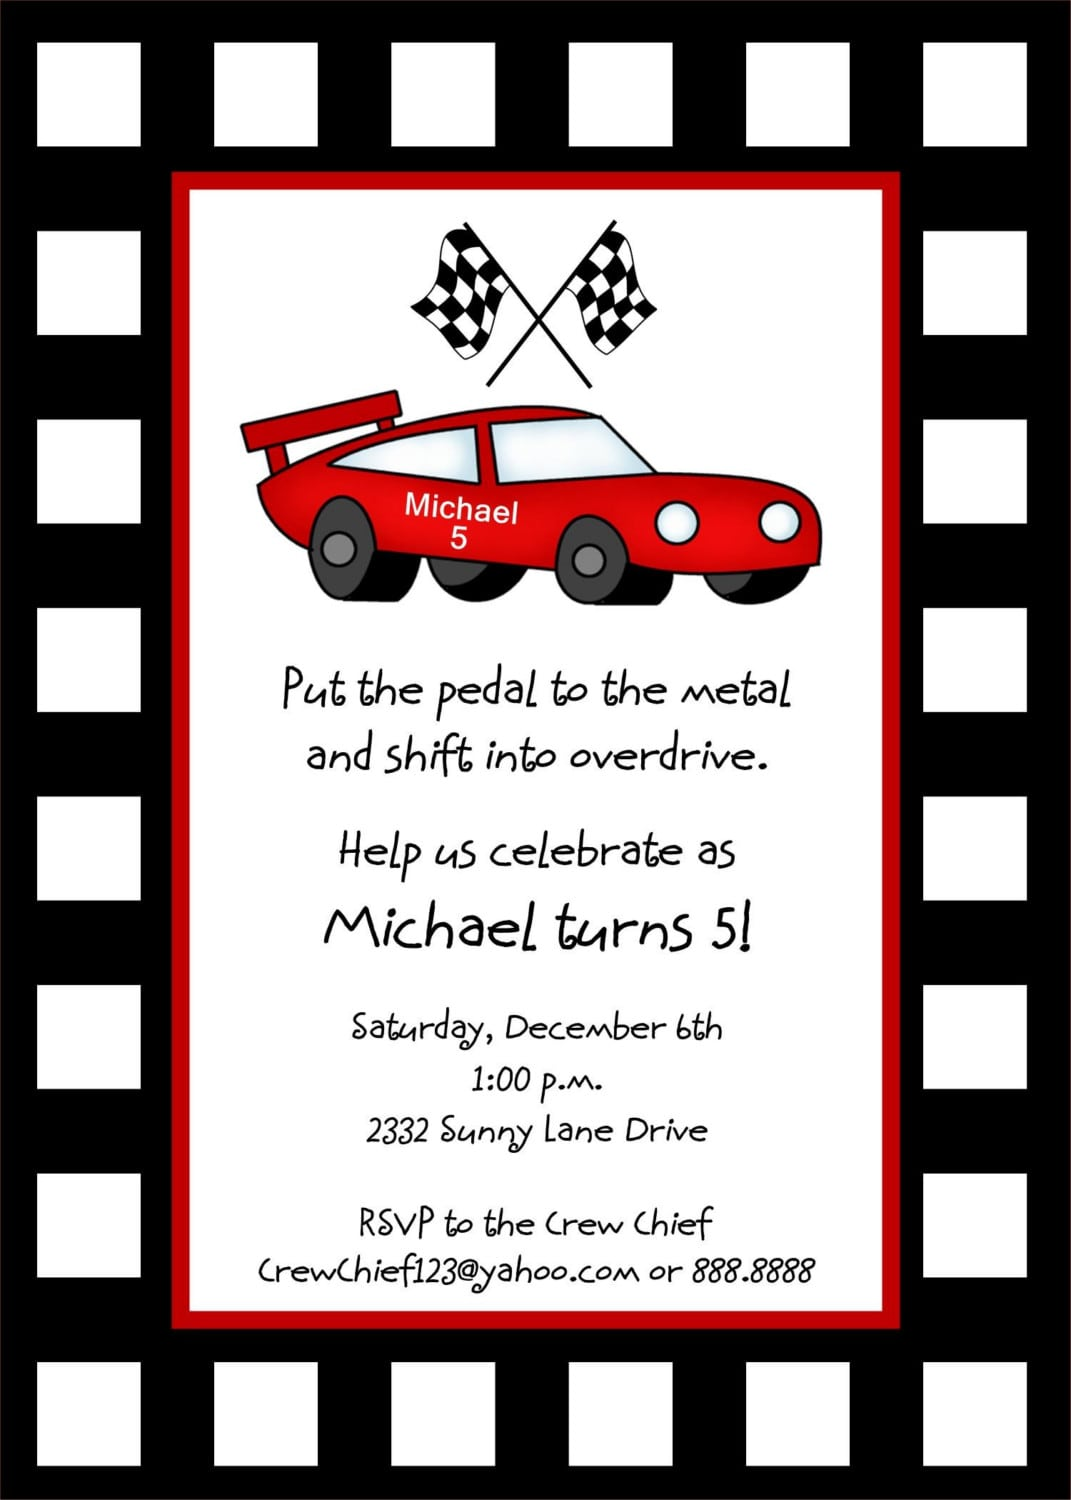 Cars Invitation Card Template Free: Race Car Birthday Invitation Template Free